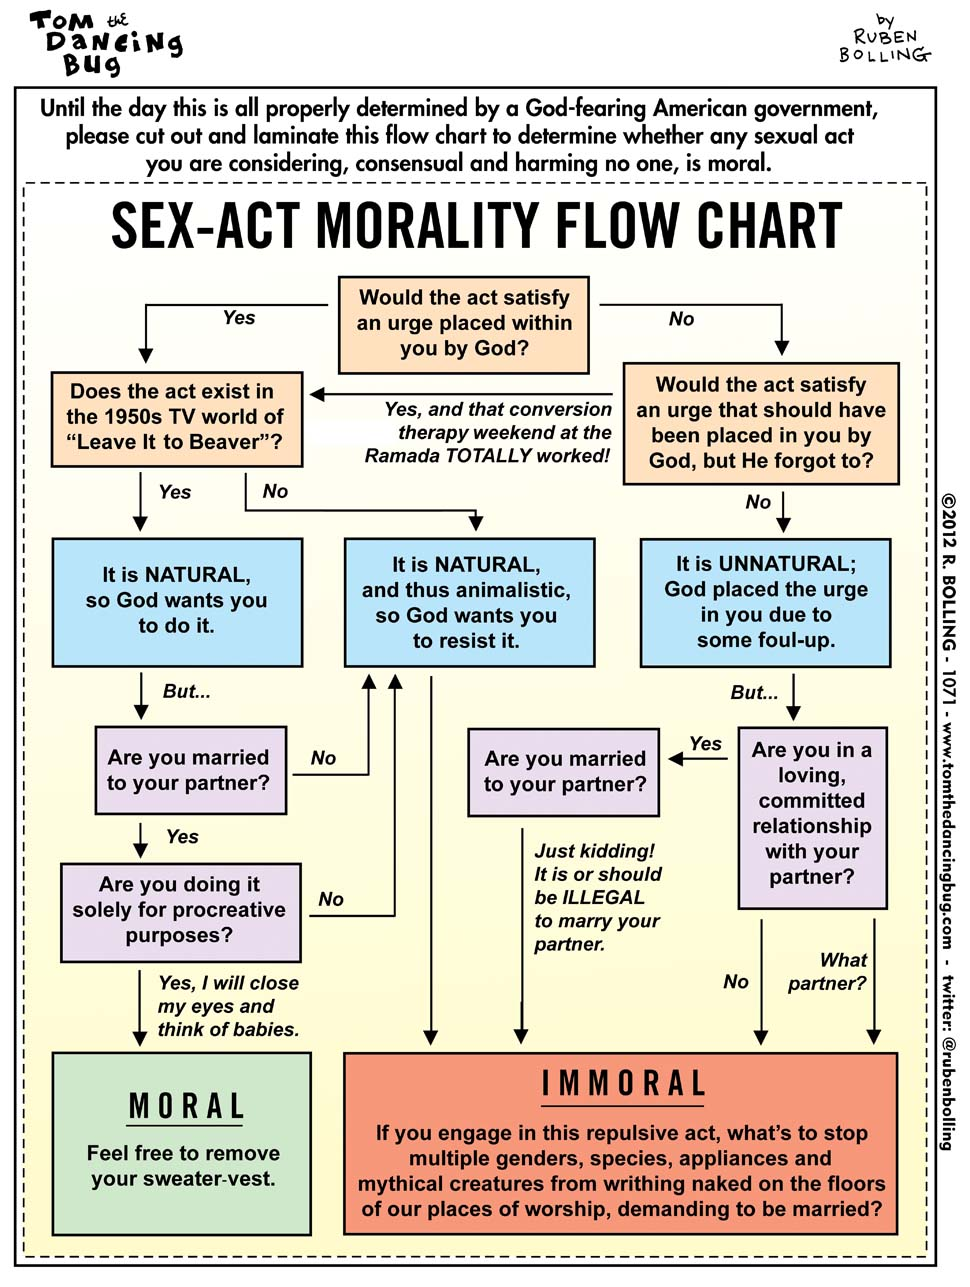 Is it ok to have anal sex